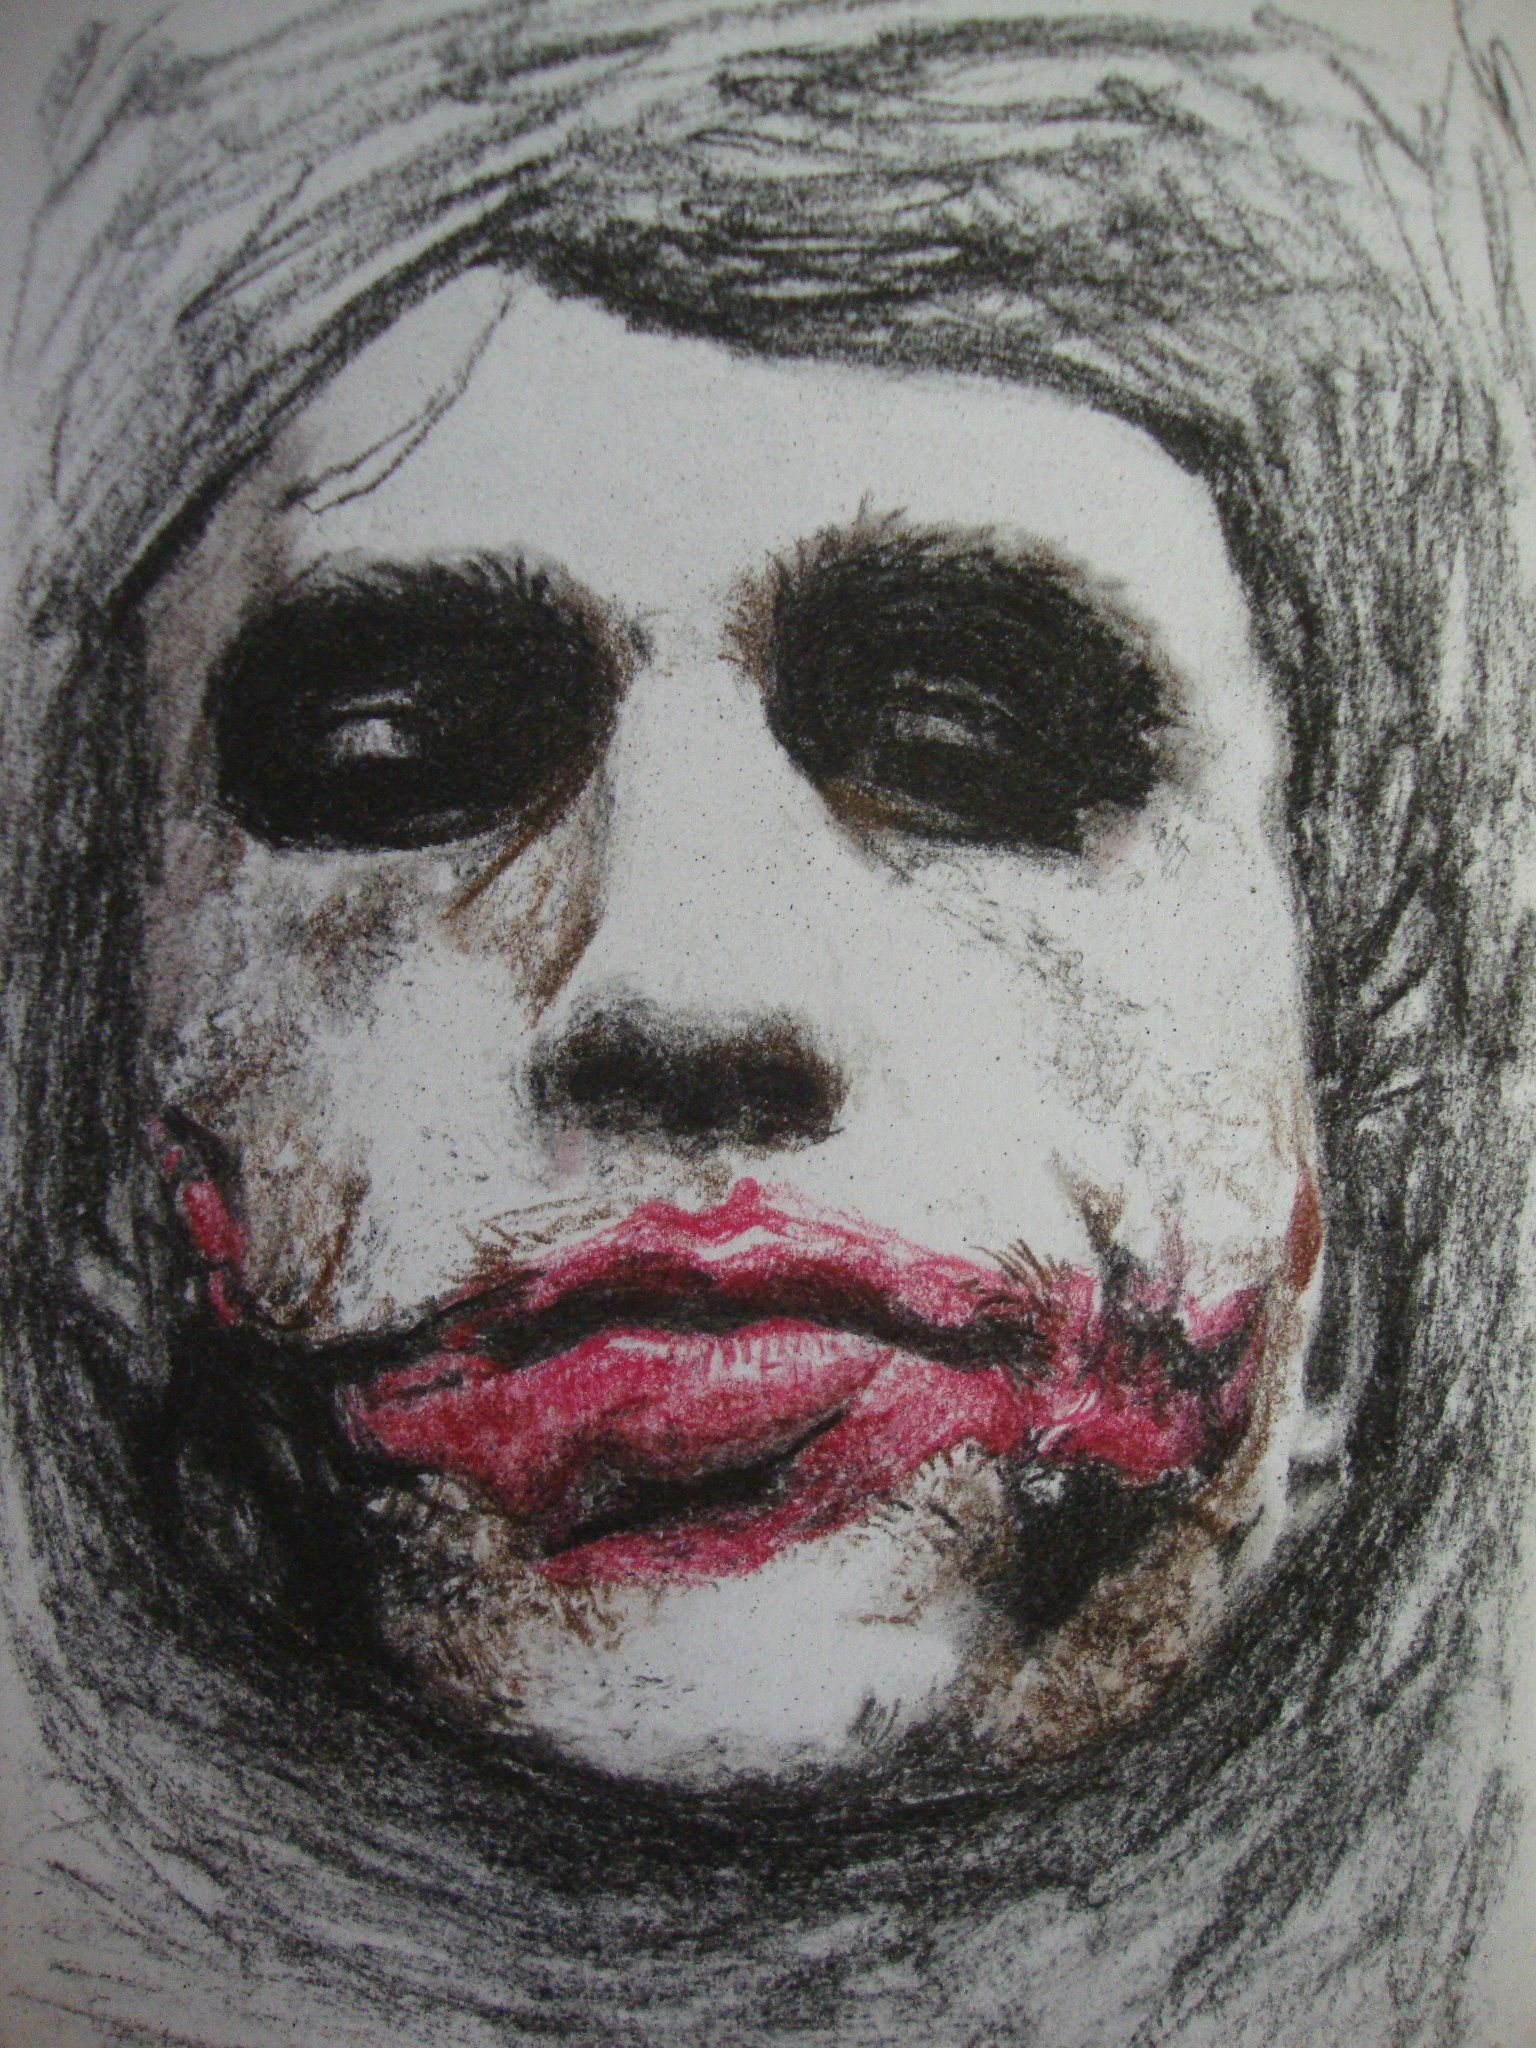 A Draw I made in tribute to Heath Ledger